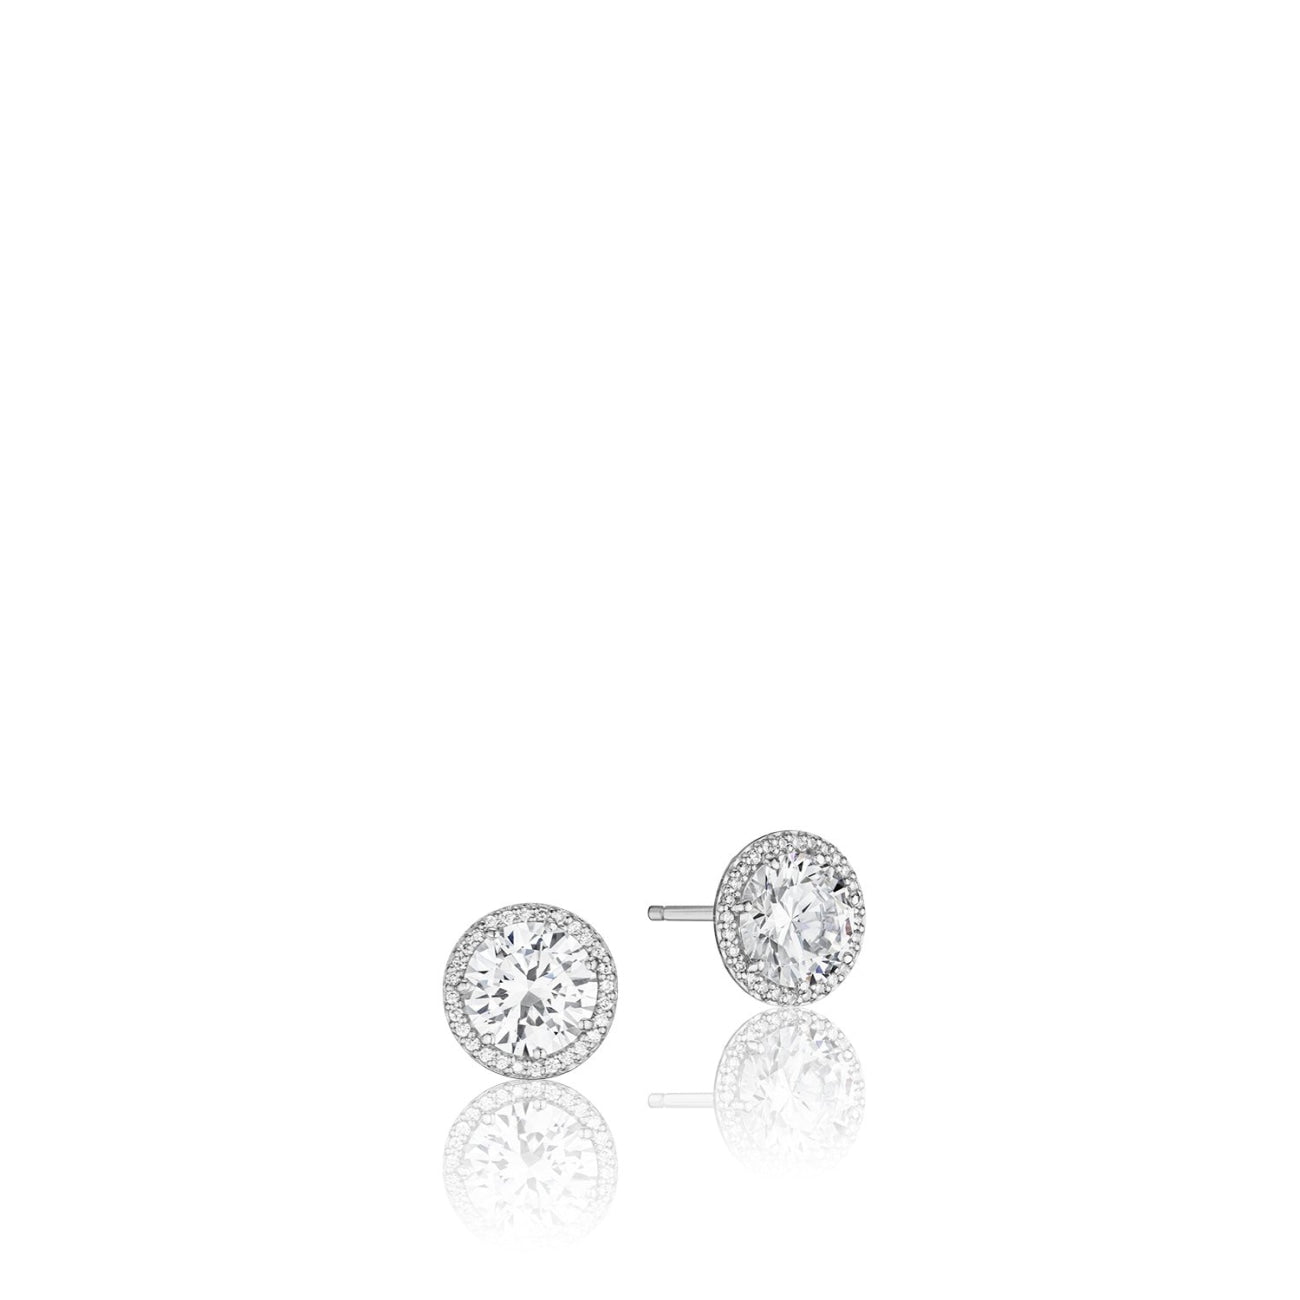 Tacori Jewelry - 3.45ctw sapphire earrings | Manfredi Jewels